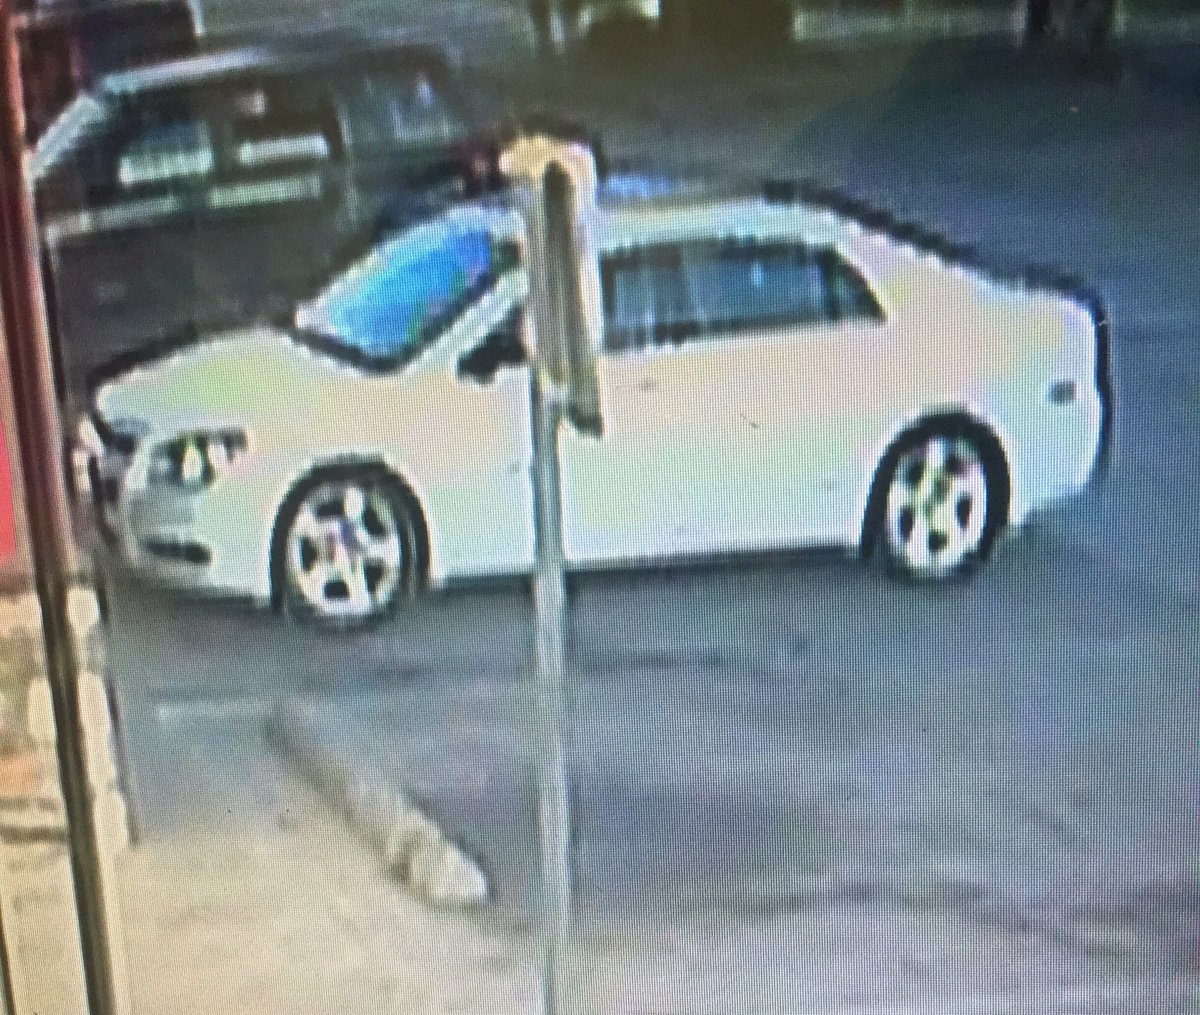 Shannon Murray On Twitter Police Are Looking For This White Chevy